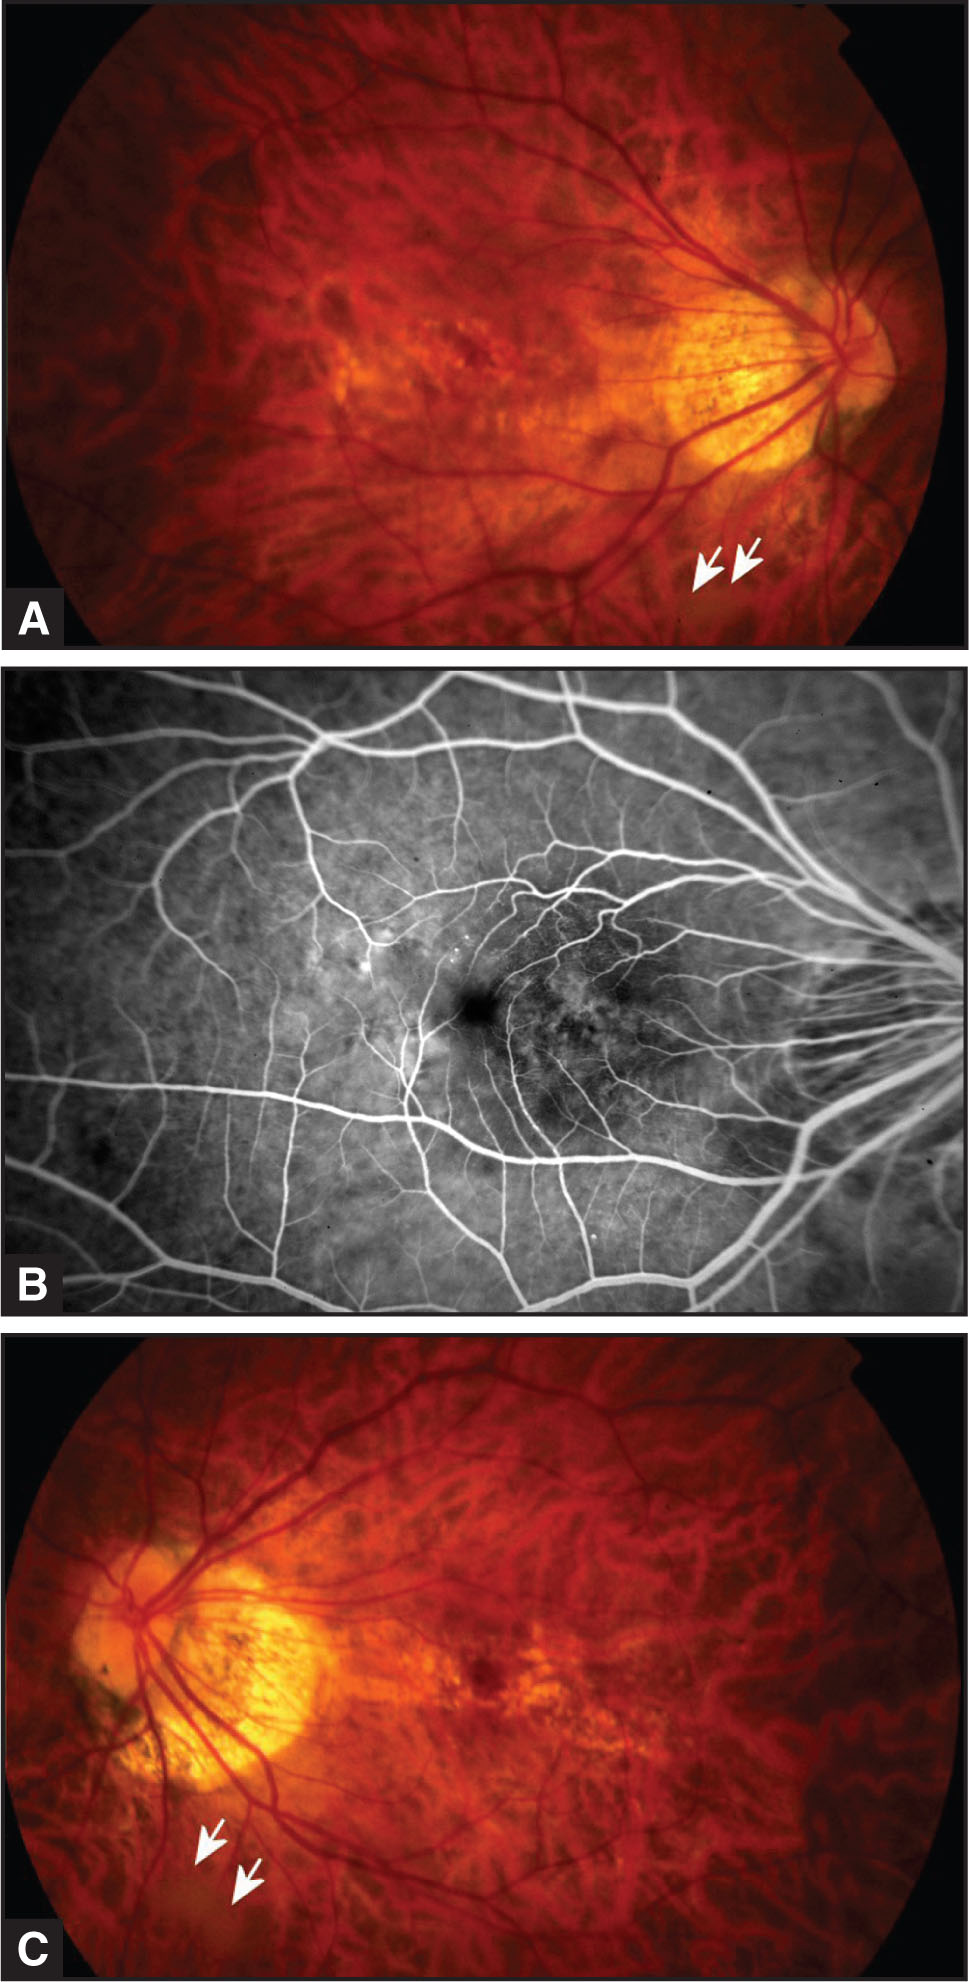 (A) Color Fundus Photography of the Right Eye 5 Years Before Surgery Showed Peripapillary Atrophy with Atrophic RPE Changes and What Appears to be a Weiss Ring Indicating Posterior Vitreous Detachment Inferior to the Optic Disk (arrows). (B) Fluorescein Angiography Showed Window Defects Without Leakage (arrows). (C) the Color Photograph of the Left Eye Has Similar Atrophic Macular RPE Changes and Apparent Weiss Ring (arrows).